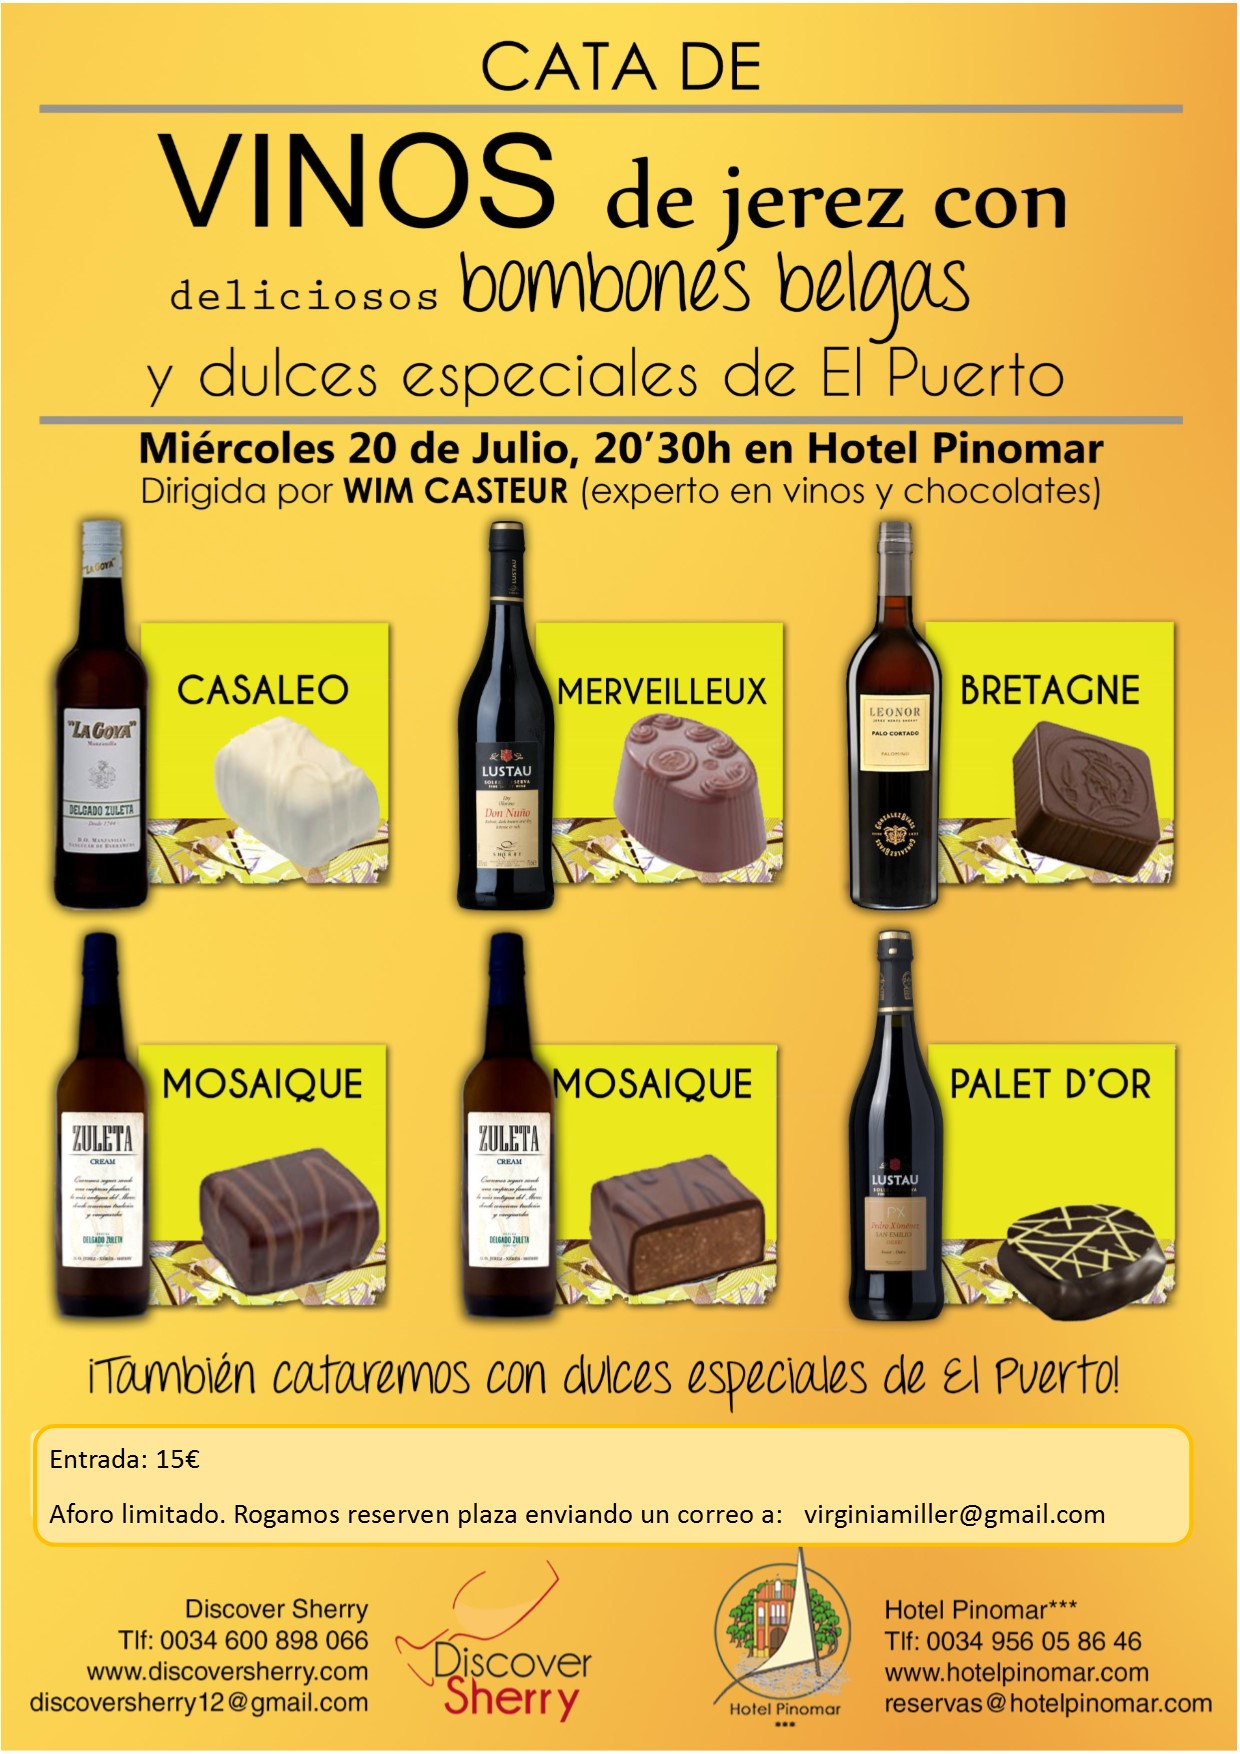 Discover Sherry presenta la II Cata de bombones y vinos del Marco de Jerez / Discover Sherry presents the 2nd Tasting and Pairing of Chocolates and Sherry Wines